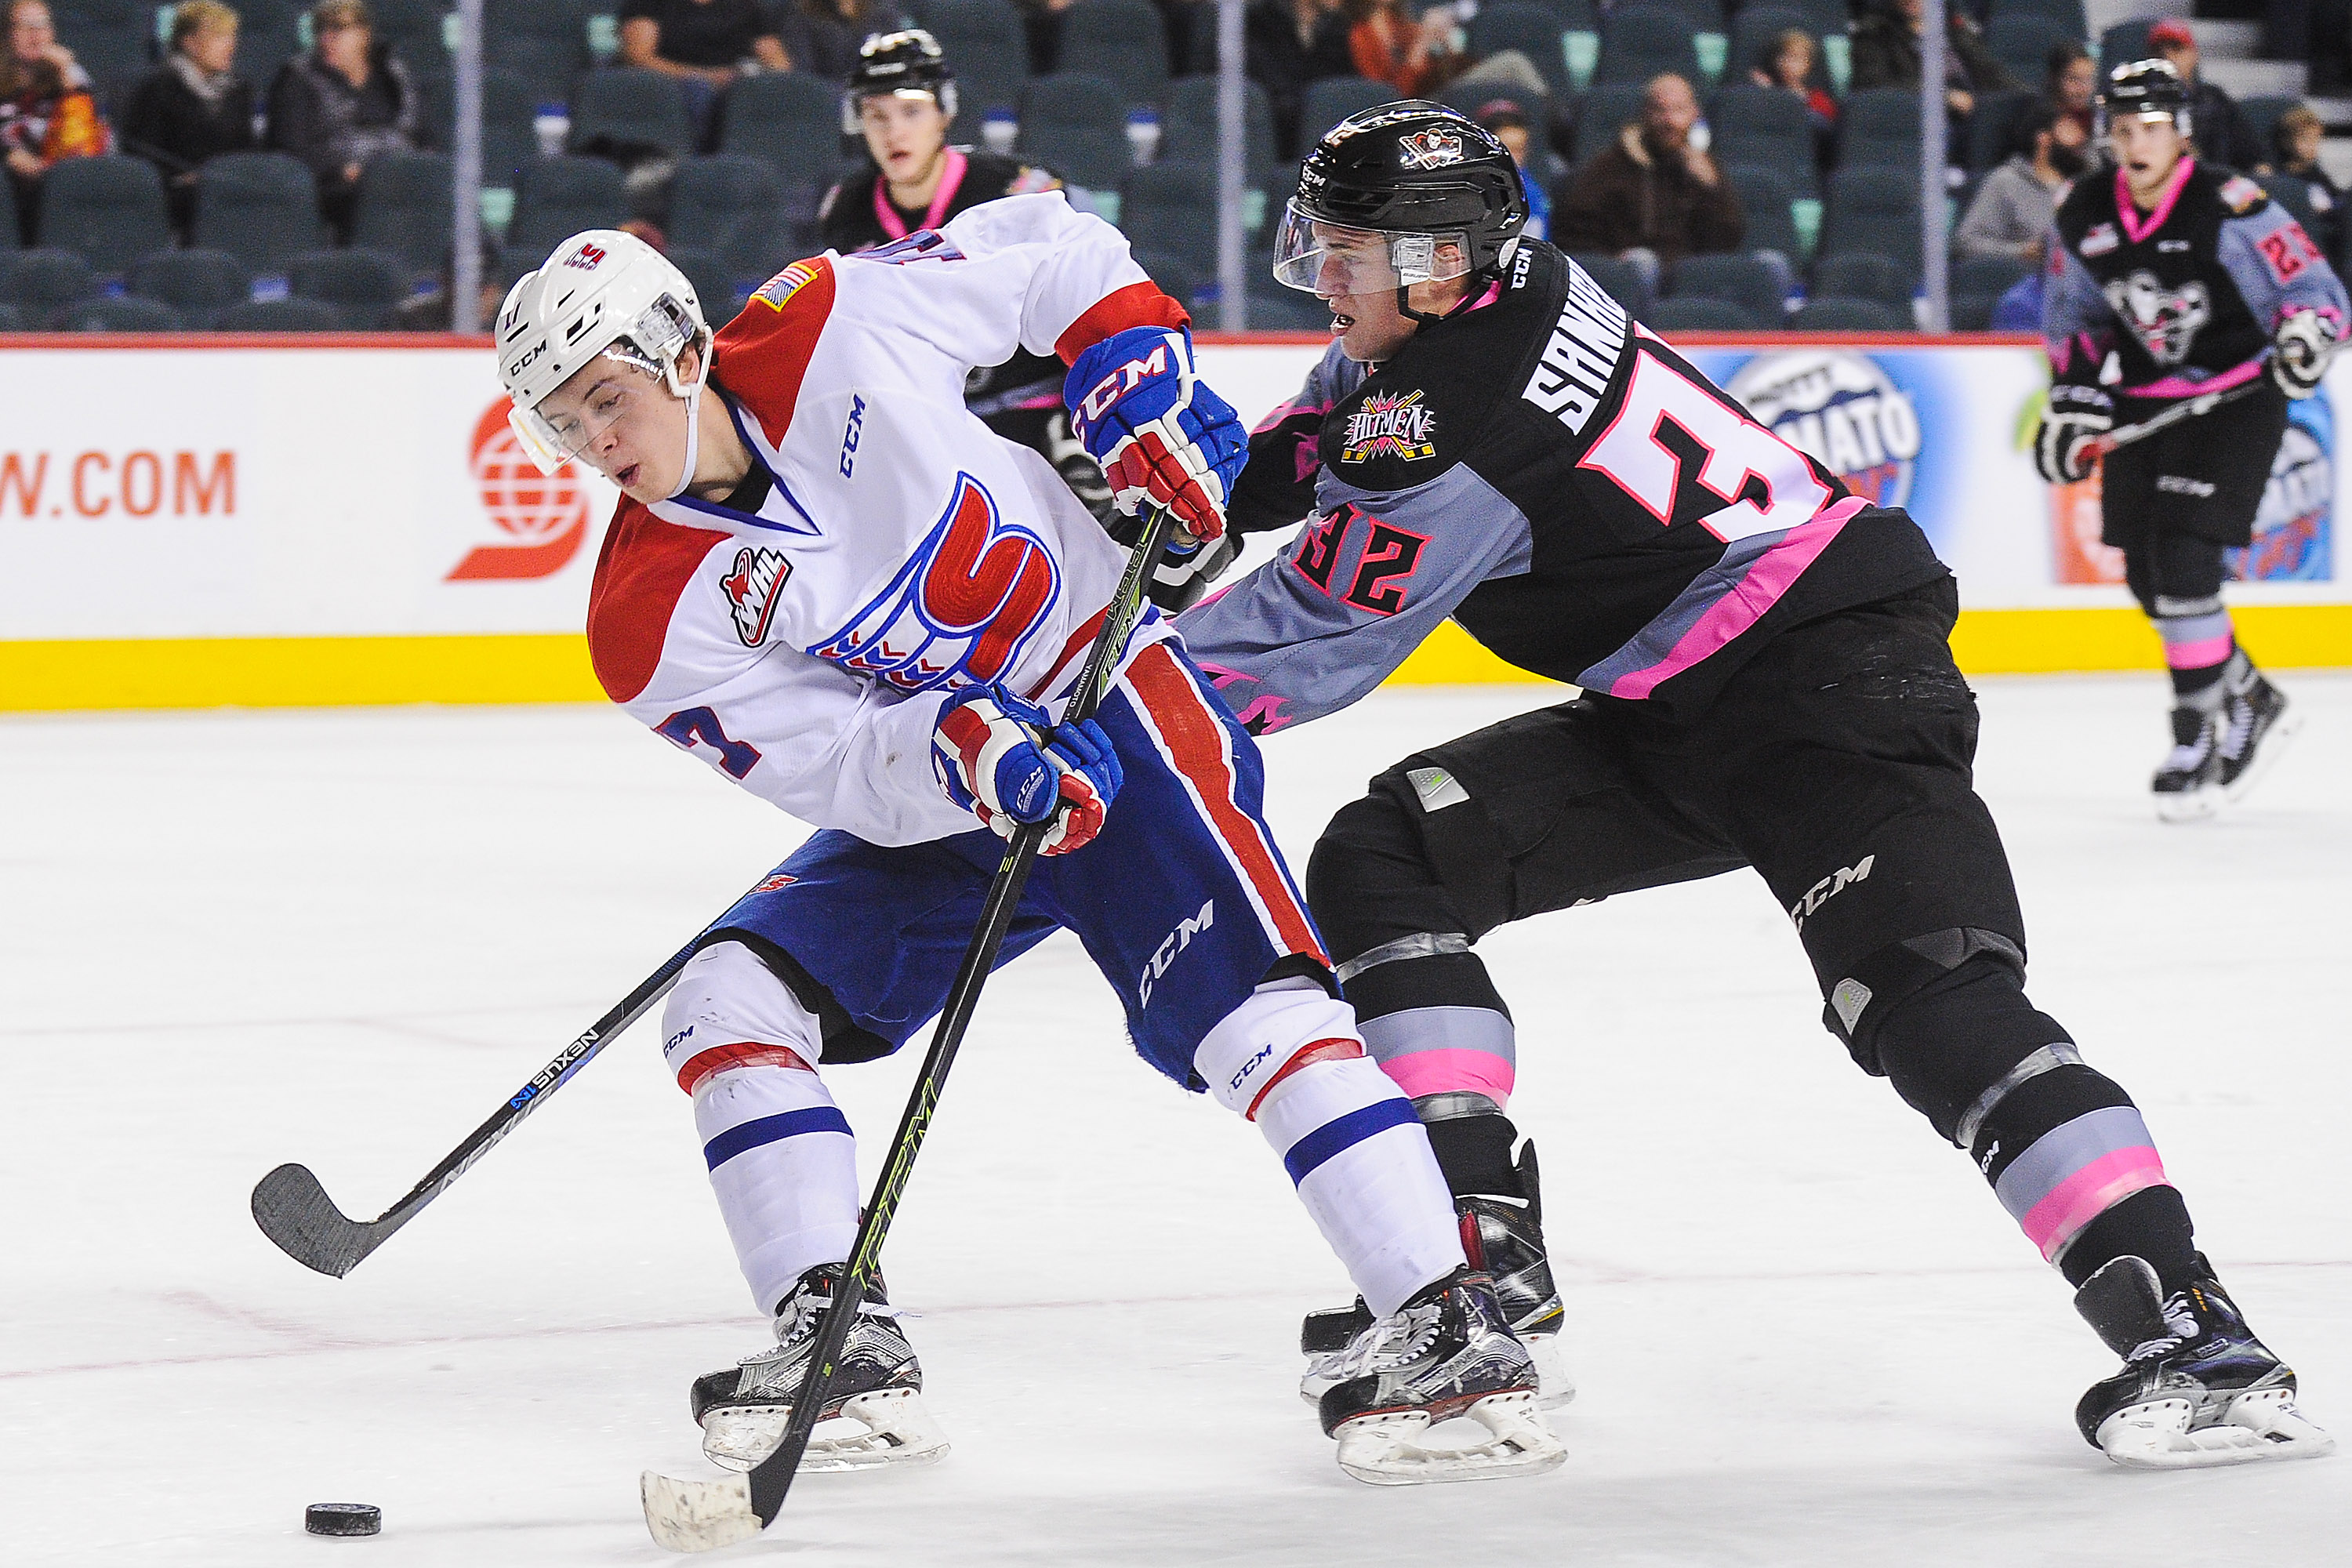 Kailer Yamamoto (left) was named WHL Player of the Week.